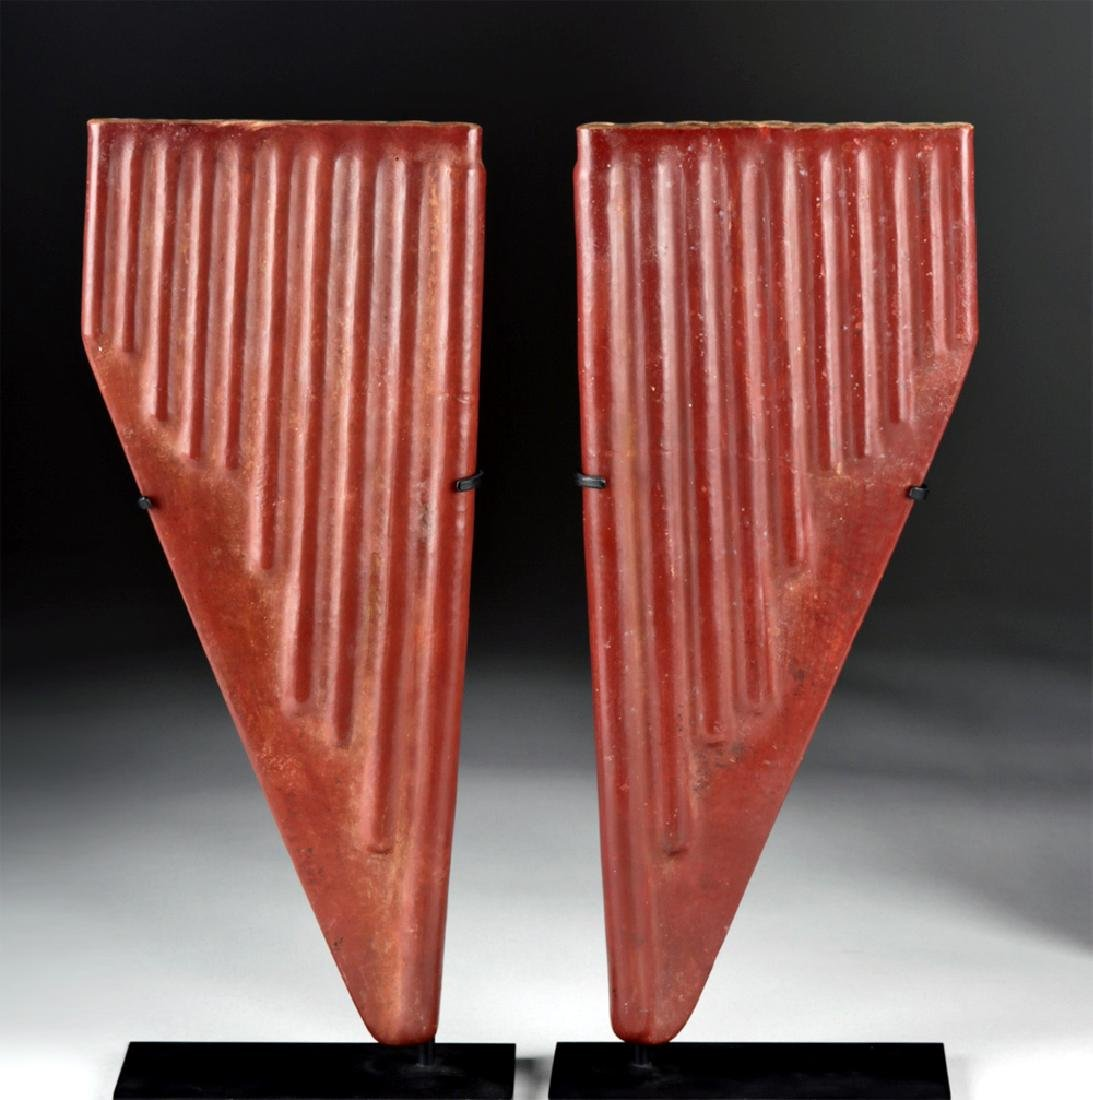 Matched Pair of Nazca Redware Panpipes